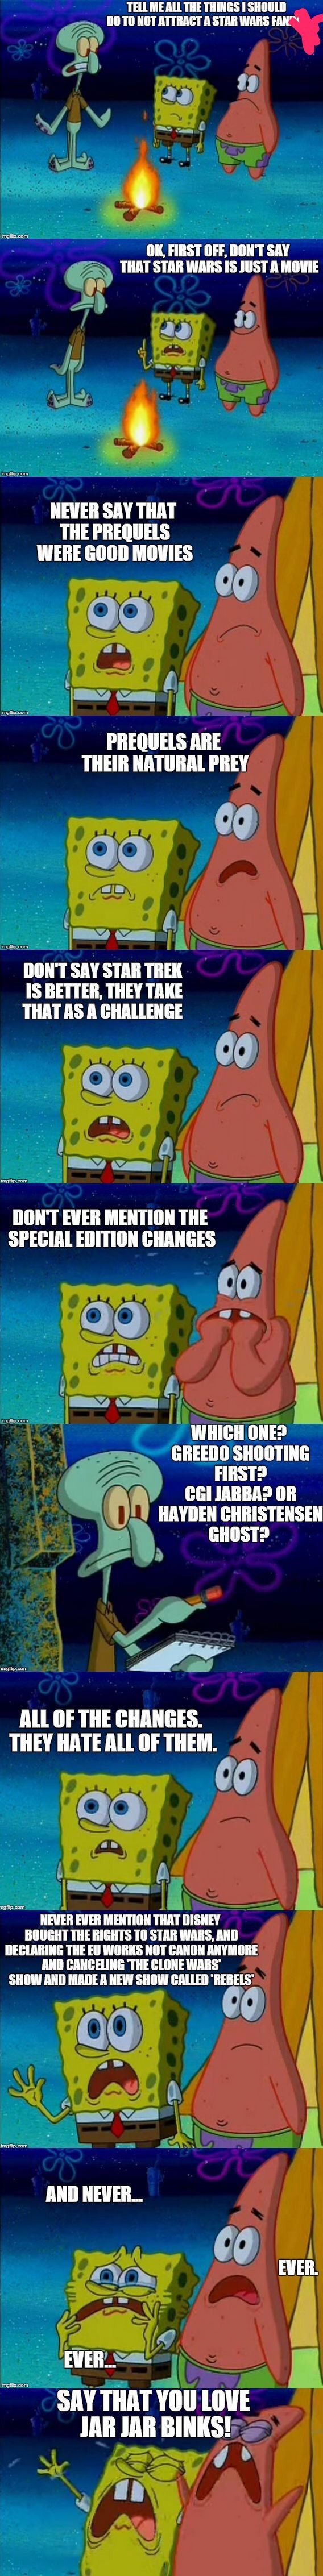 I have no problem with the prequels, or the special edition changes, because I have also seen the originals without the changes and I really don't mind.